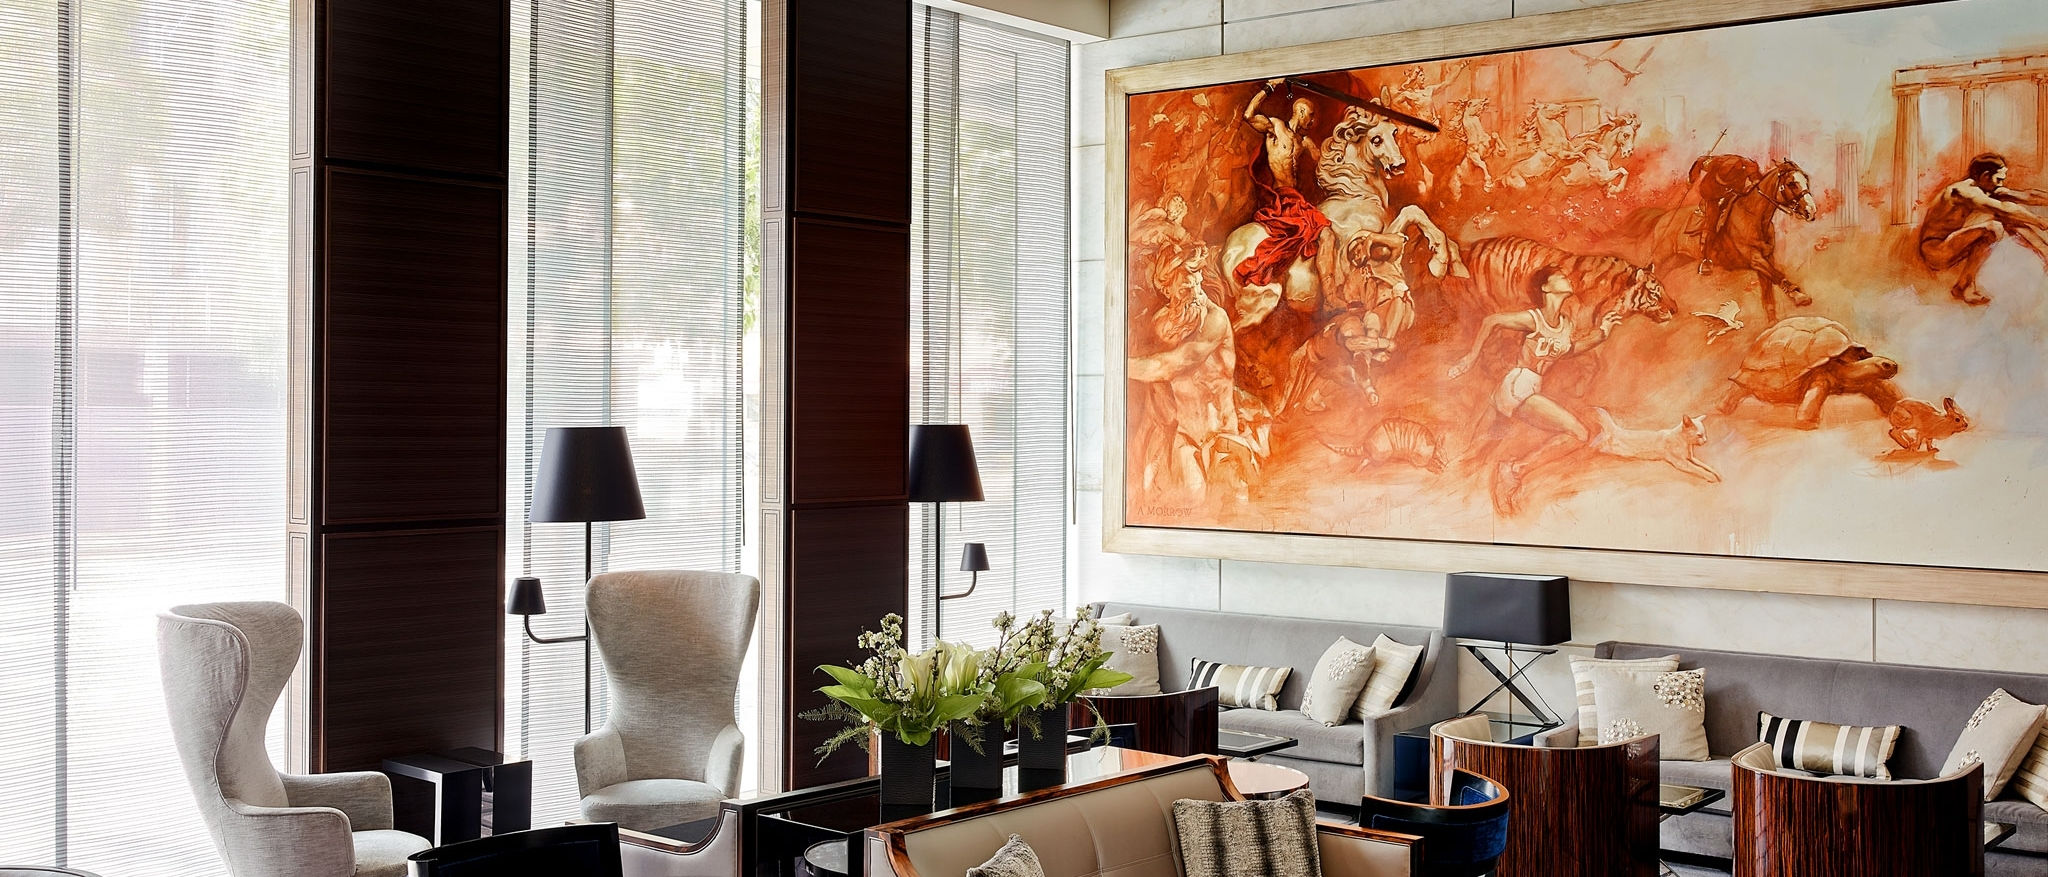 The St. Regis San Francisco - Lobby Lounge Mural